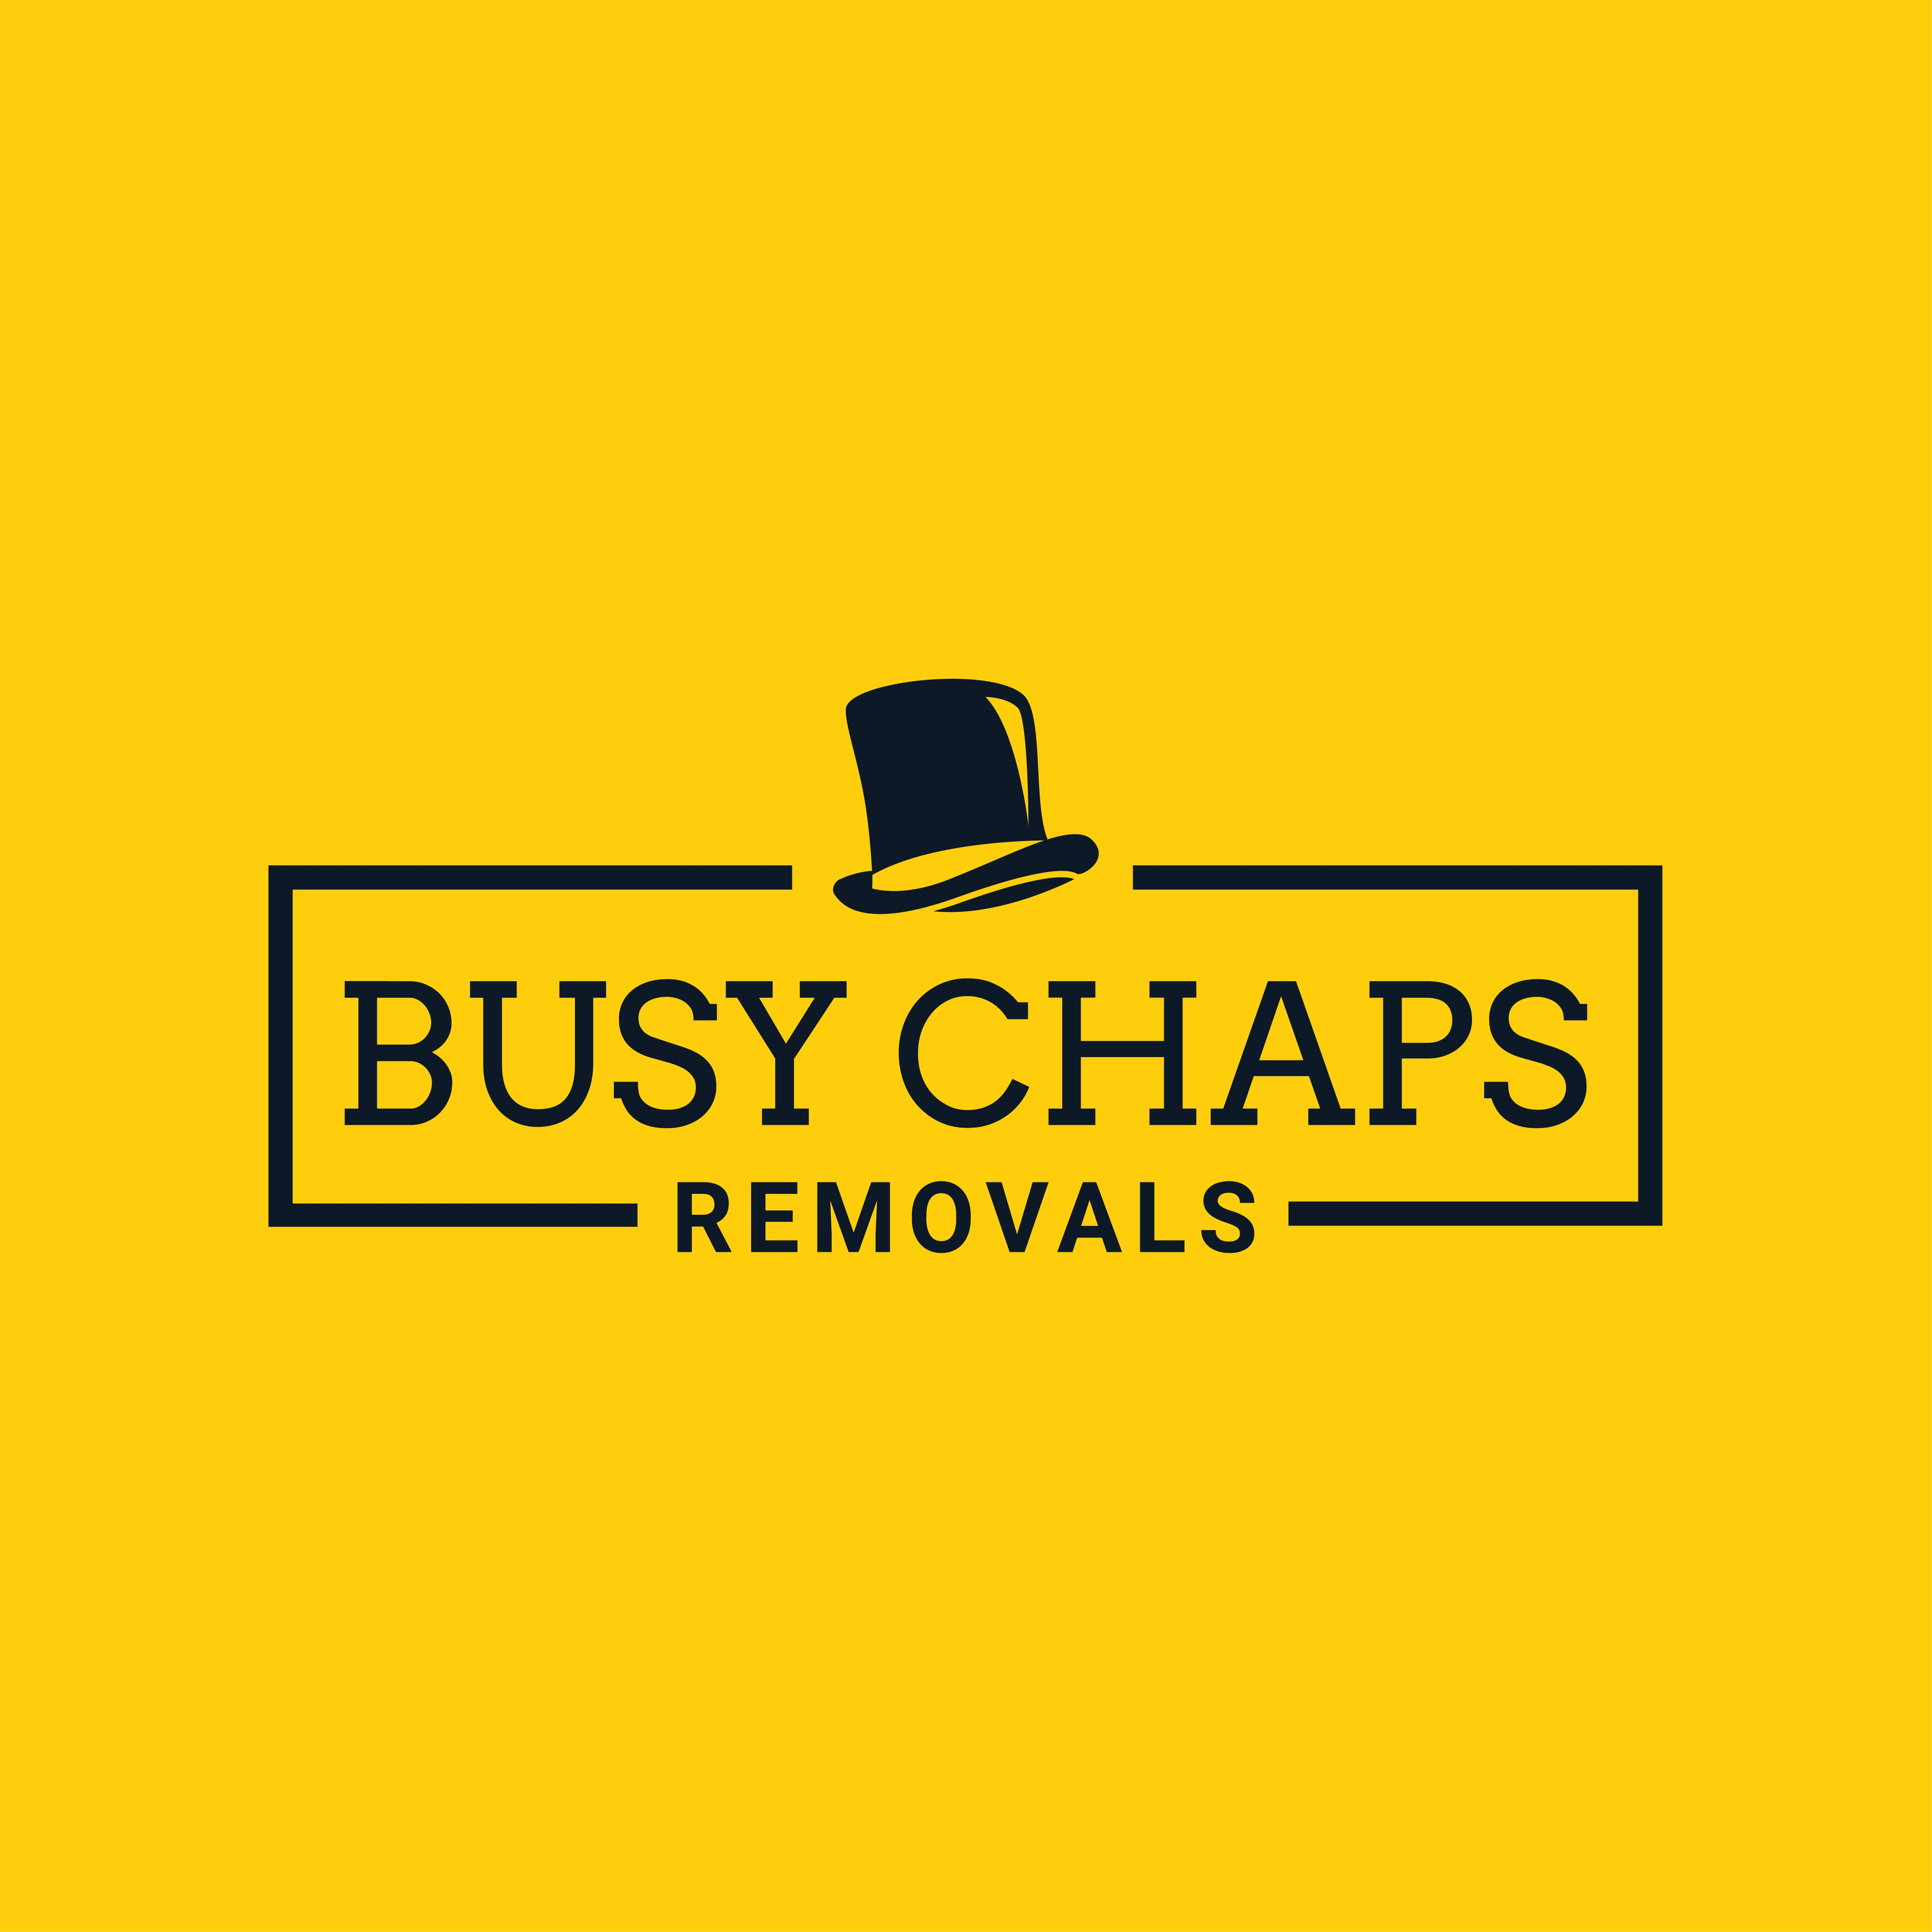 Busy Chaps Removals going pro logo design contest I'm looking for a more corporate logo and concept I'm moving away from